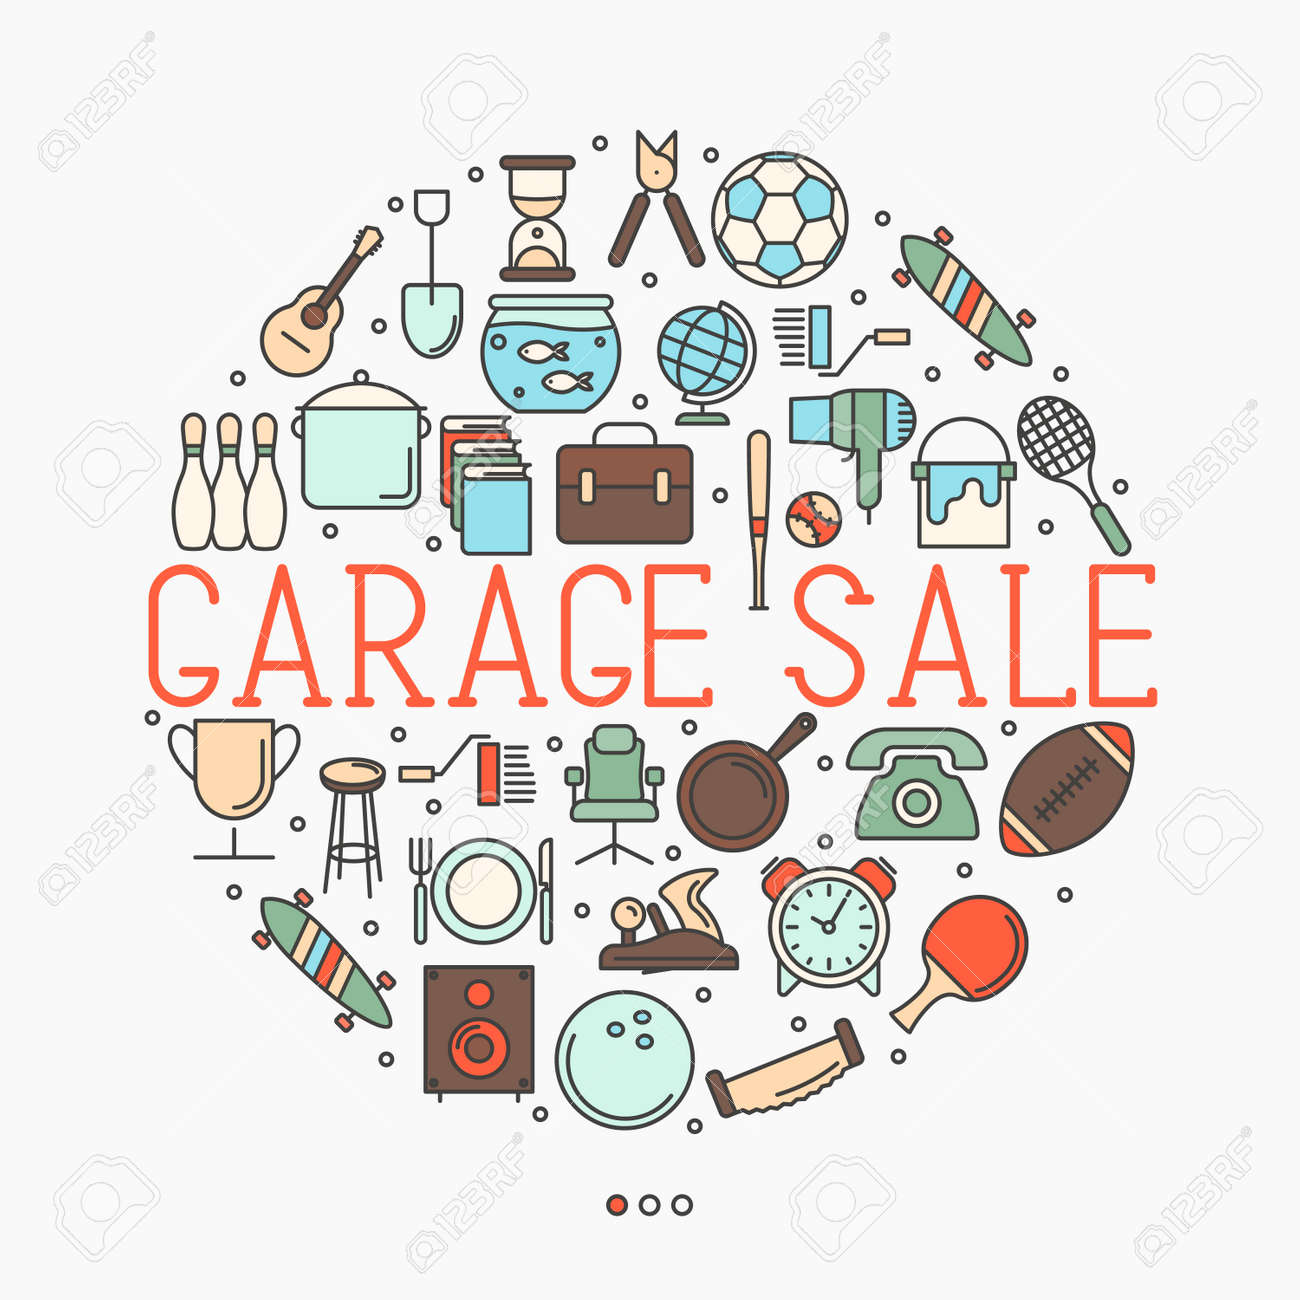 Garage sale or flea market concept in circle with text inside. Thin line vector illustration. - 80348026